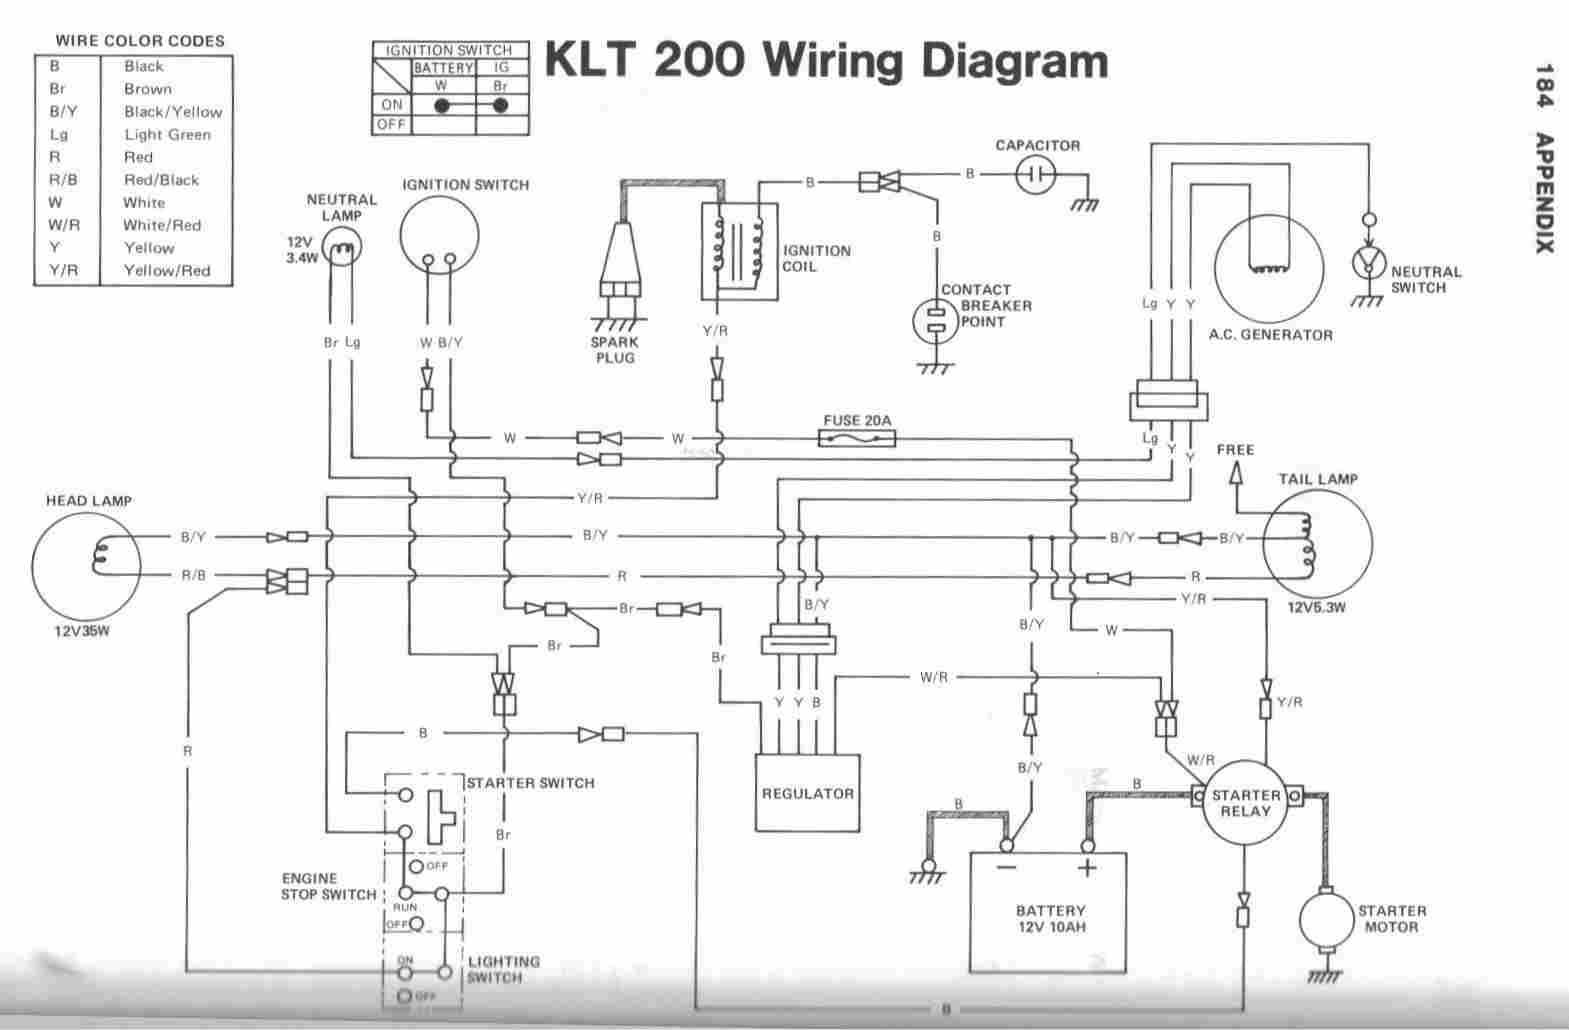 Electrical Wiring Diagram In House : Residential electrical wiring diagrams pdf easy routing